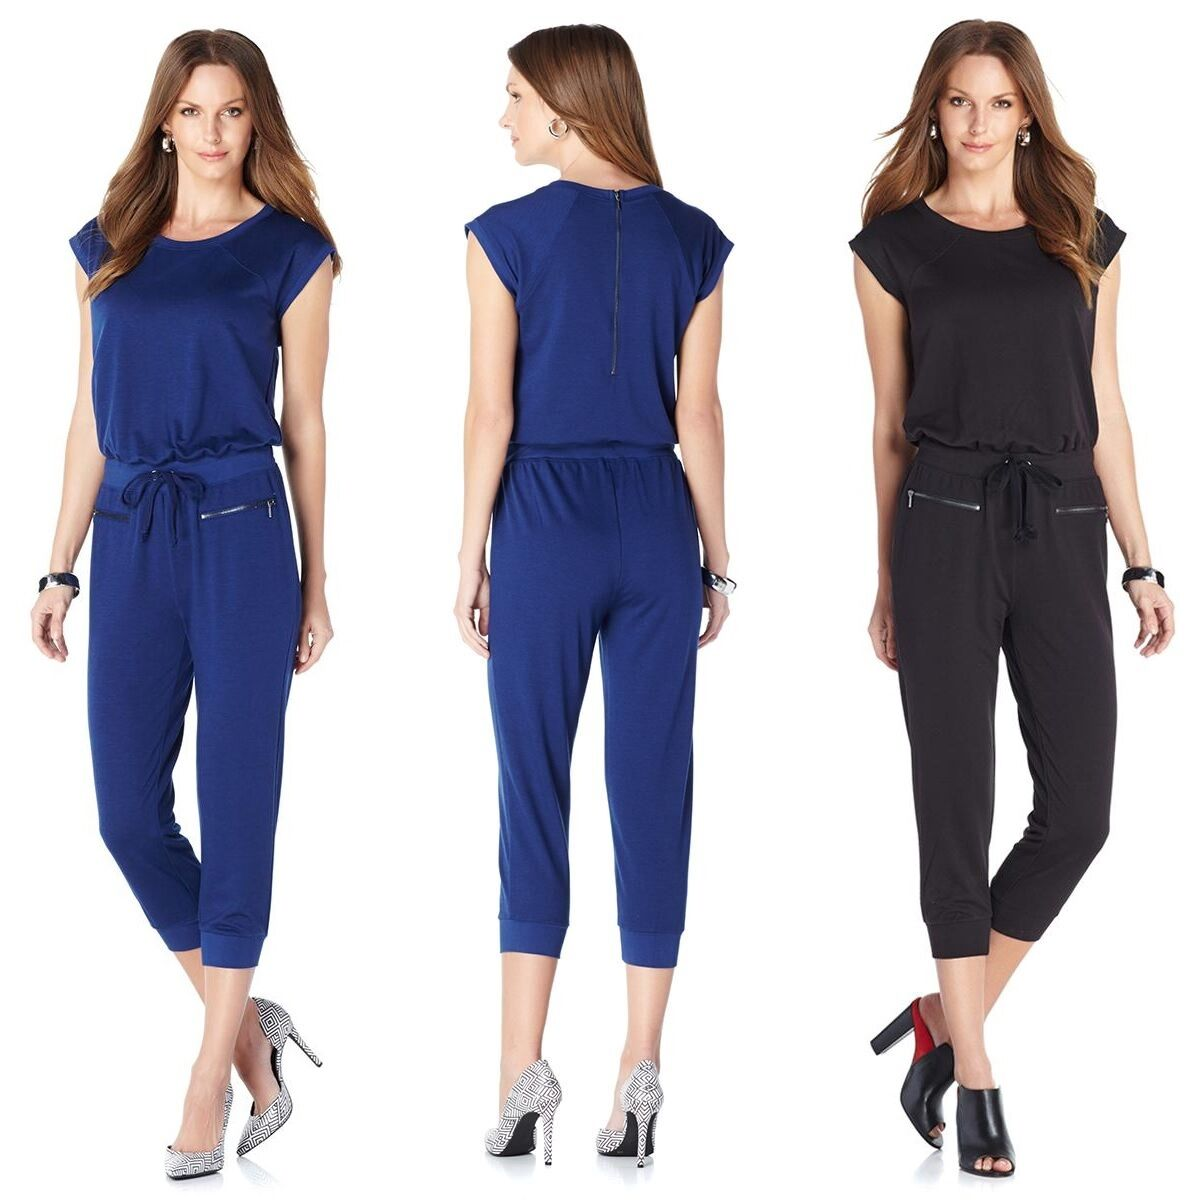 Serena Williams Cap-Sleeve Jumpsuit w Zipper Detail 405841-J (3X)